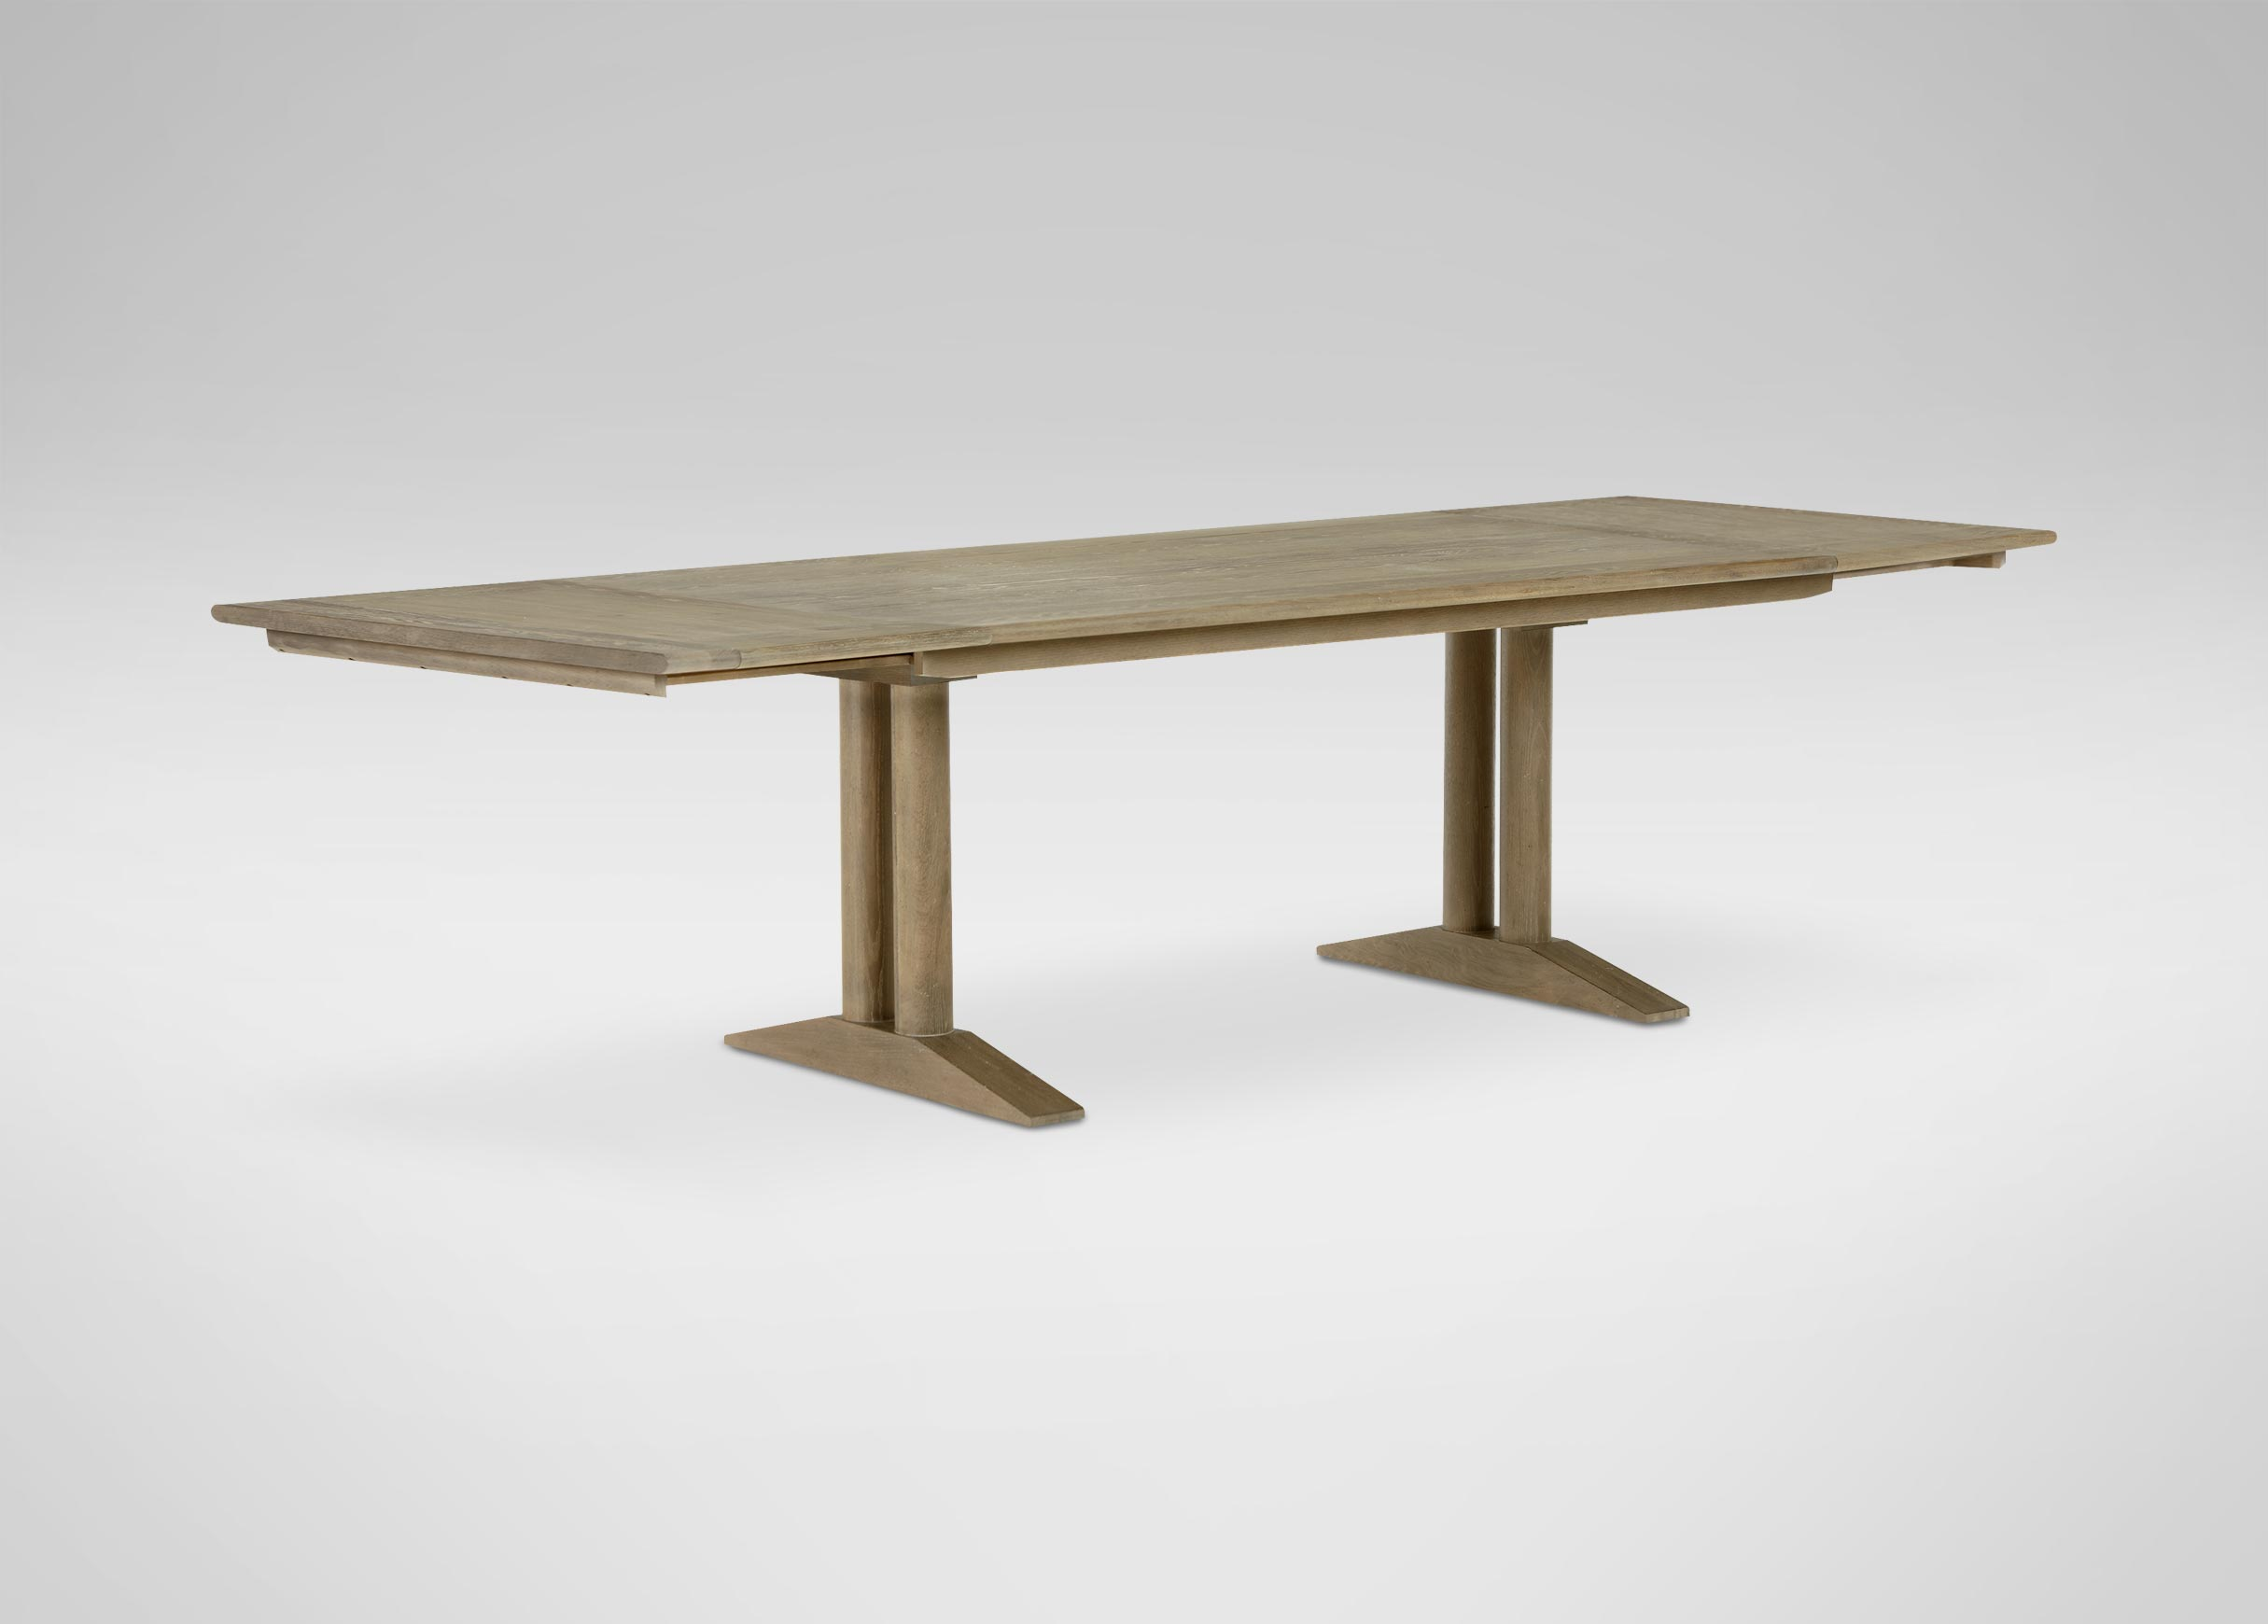 Sayer Extension Dining Table Dining Tables SiteGenesis